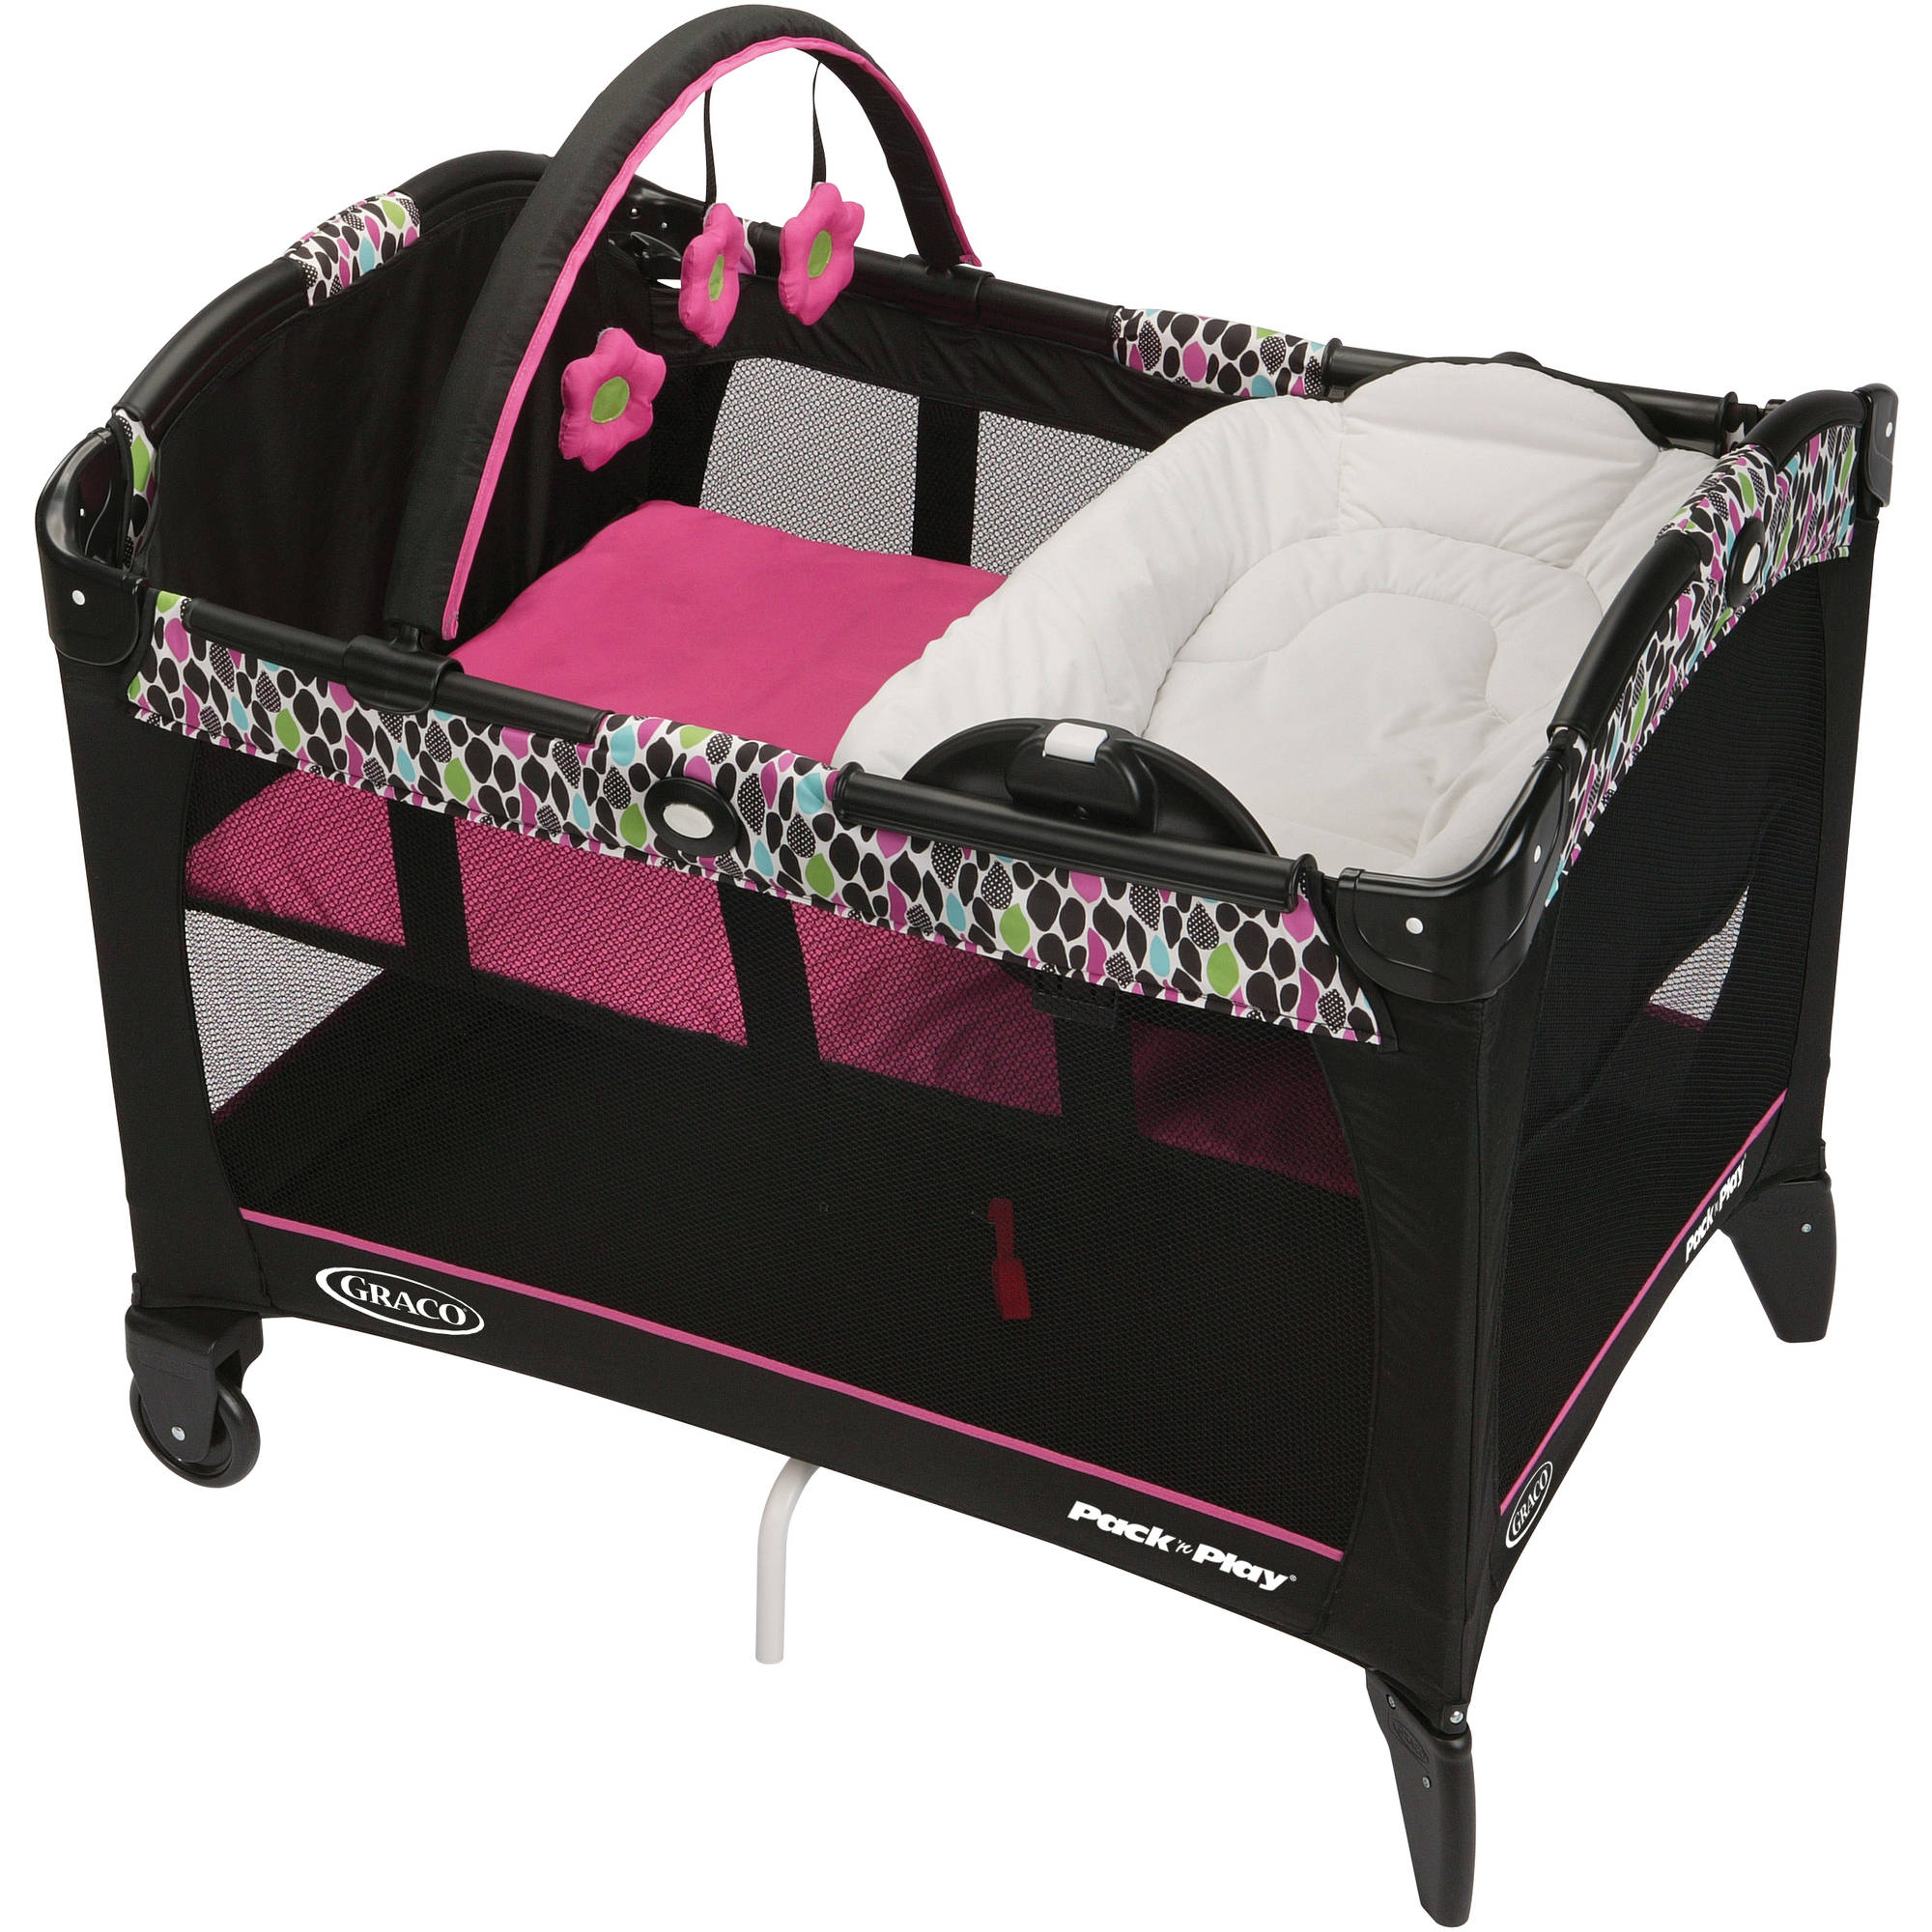 Graco Pack 'n Play Playard with Reversible Napper, Maci